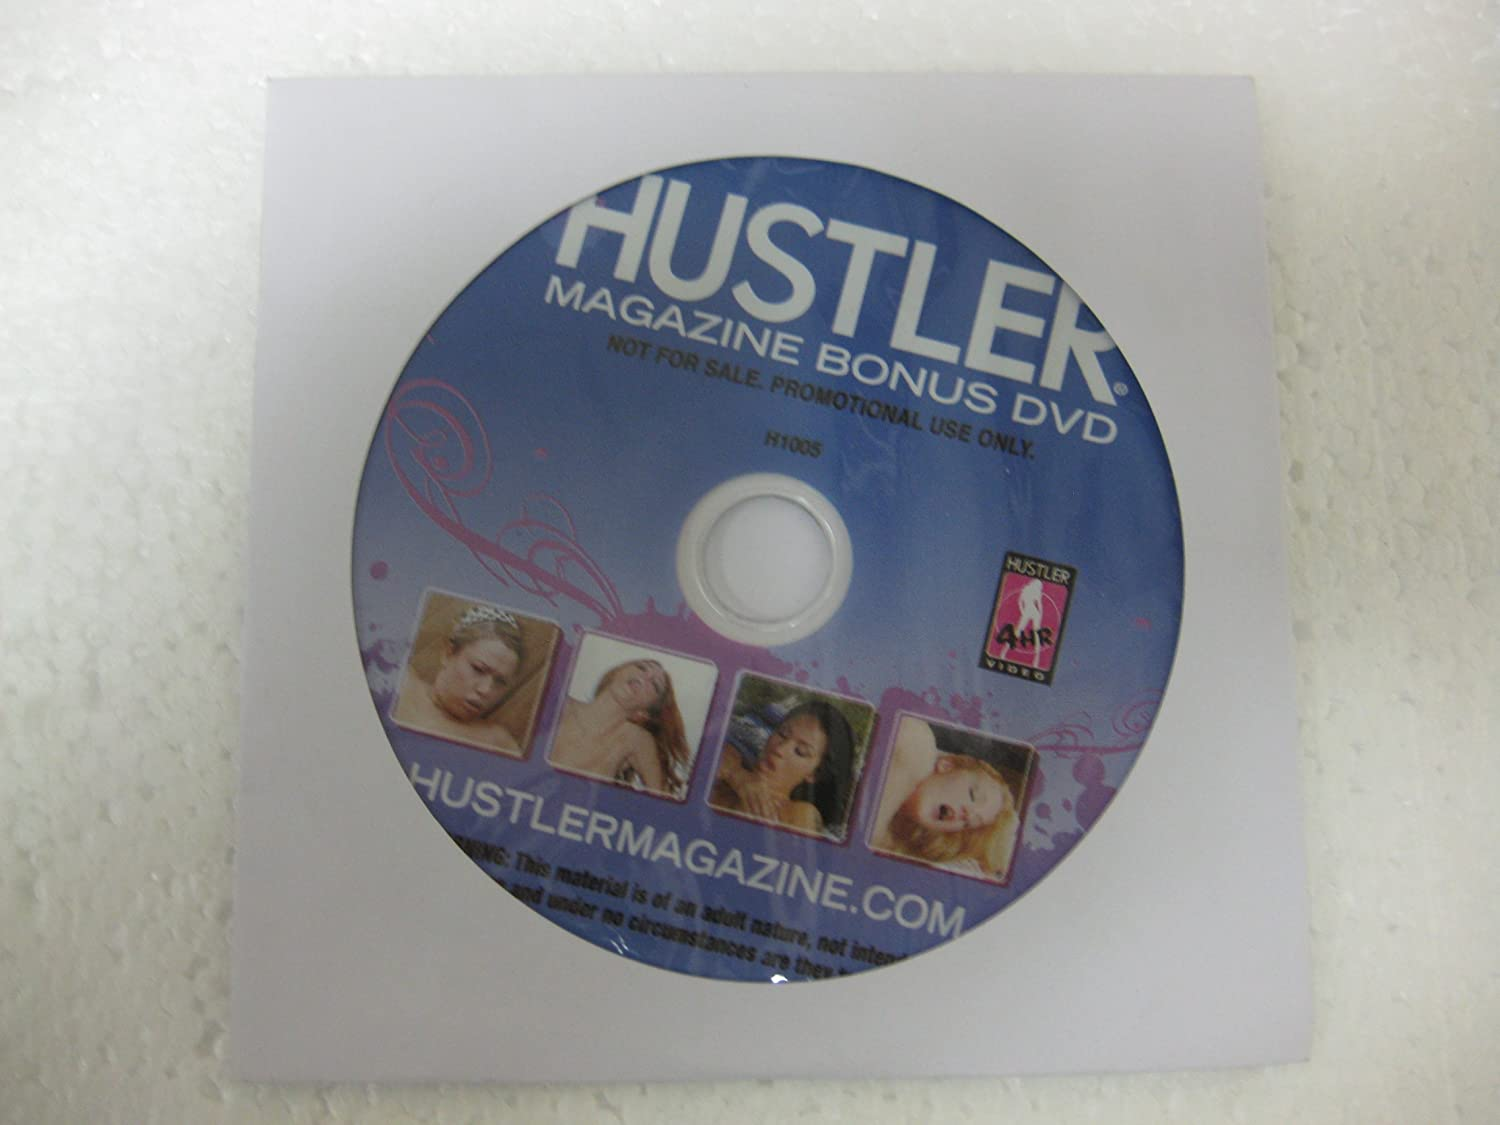 Pity, hustler dvd new realese pity, that